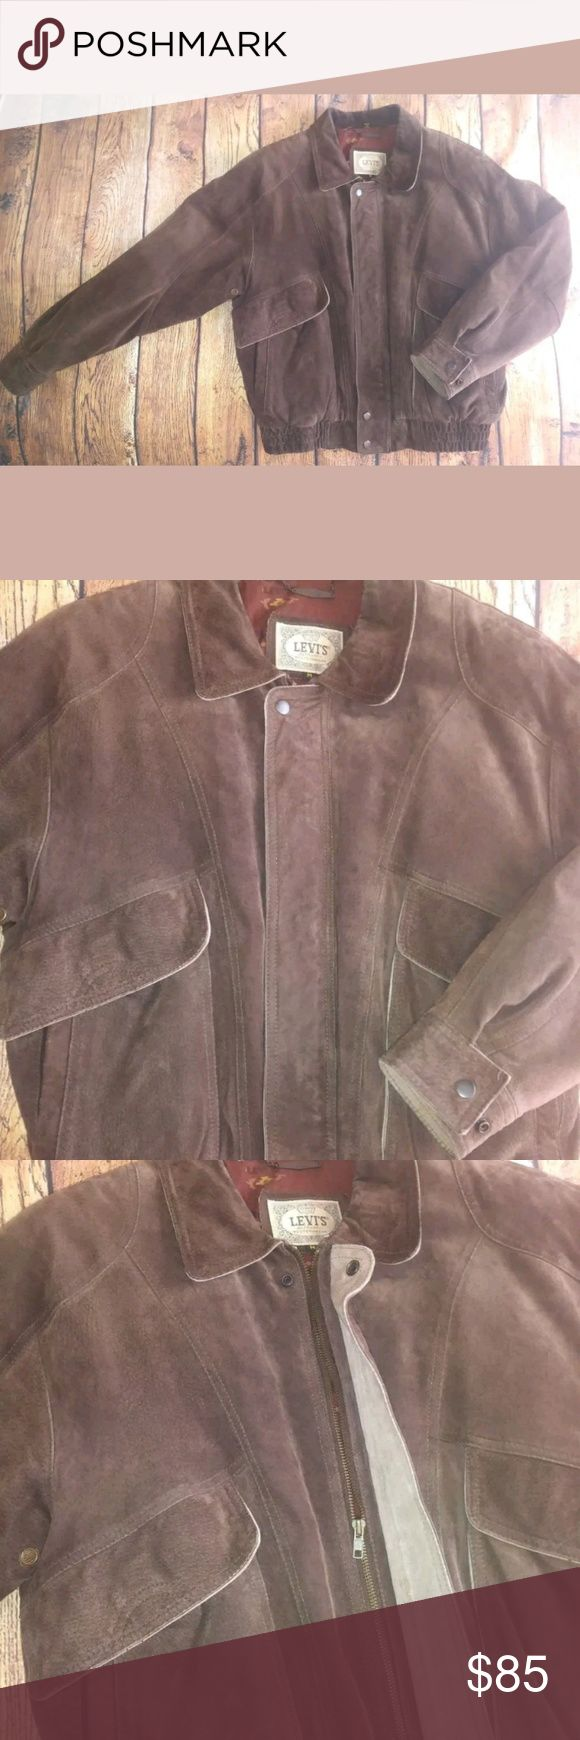 "Vtg Levi's Western Brown Suede Men's Jacket Medium Vintage Levi's Western Wear Brown Suede Leather Bomber Jacket Men's Medium  Pre-owned in very nice condition. Light wear / lightening on outer elbows. All zippers, snaps, and closures work well. Measurements:Neck edge to bottom of sleeve cuff: 32""Chest width from armpit to armpit: 26""Length from back neck edge to bottom hem: 26"" BIN A2 Levi's Jackets & Coats Bomber & Varsity"